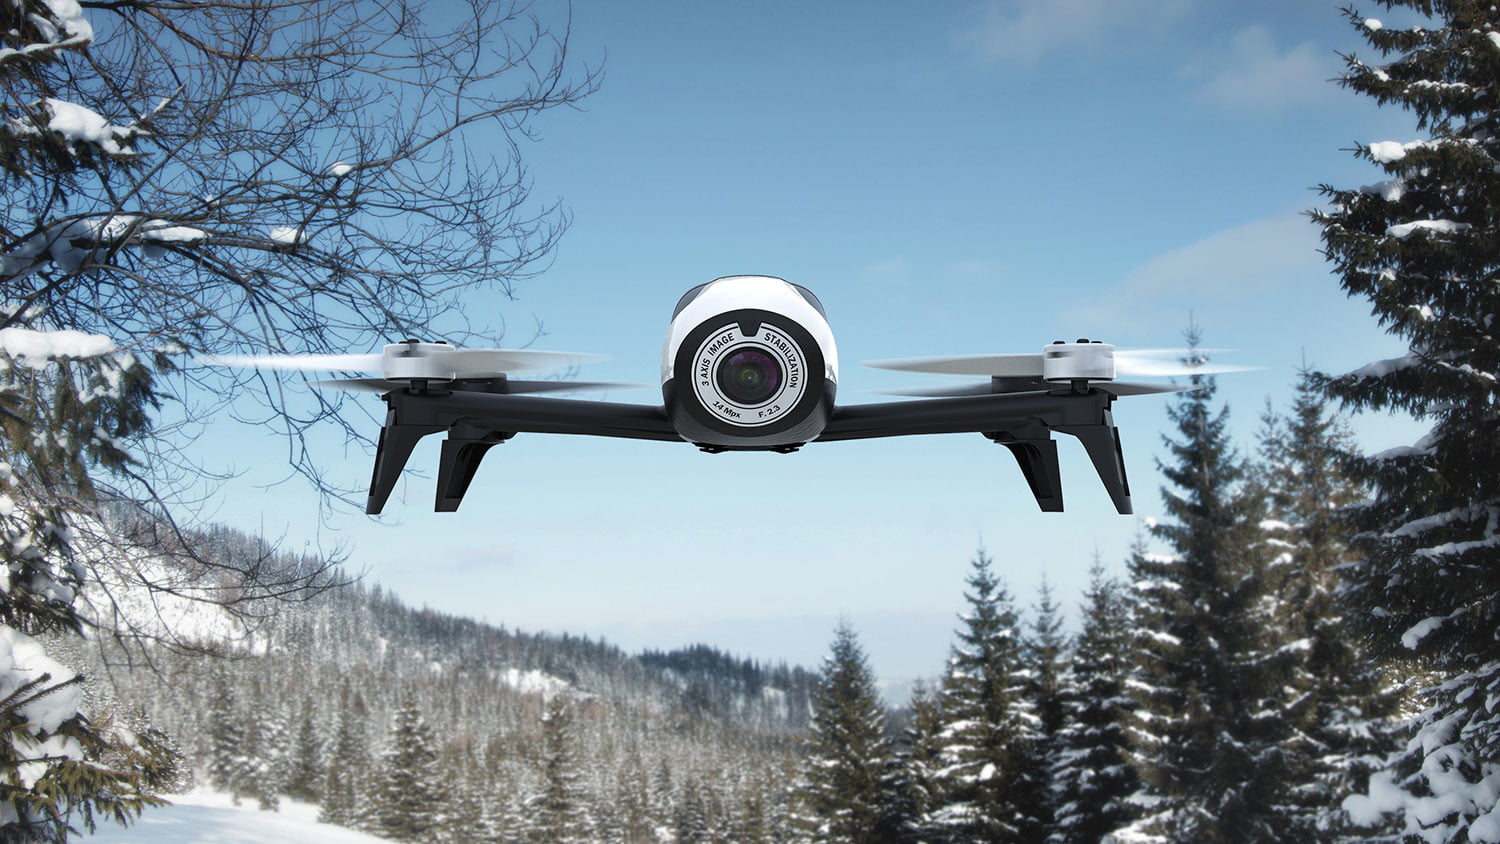 The Best Drone Under 500 You Can Buy And 5 Alternatives